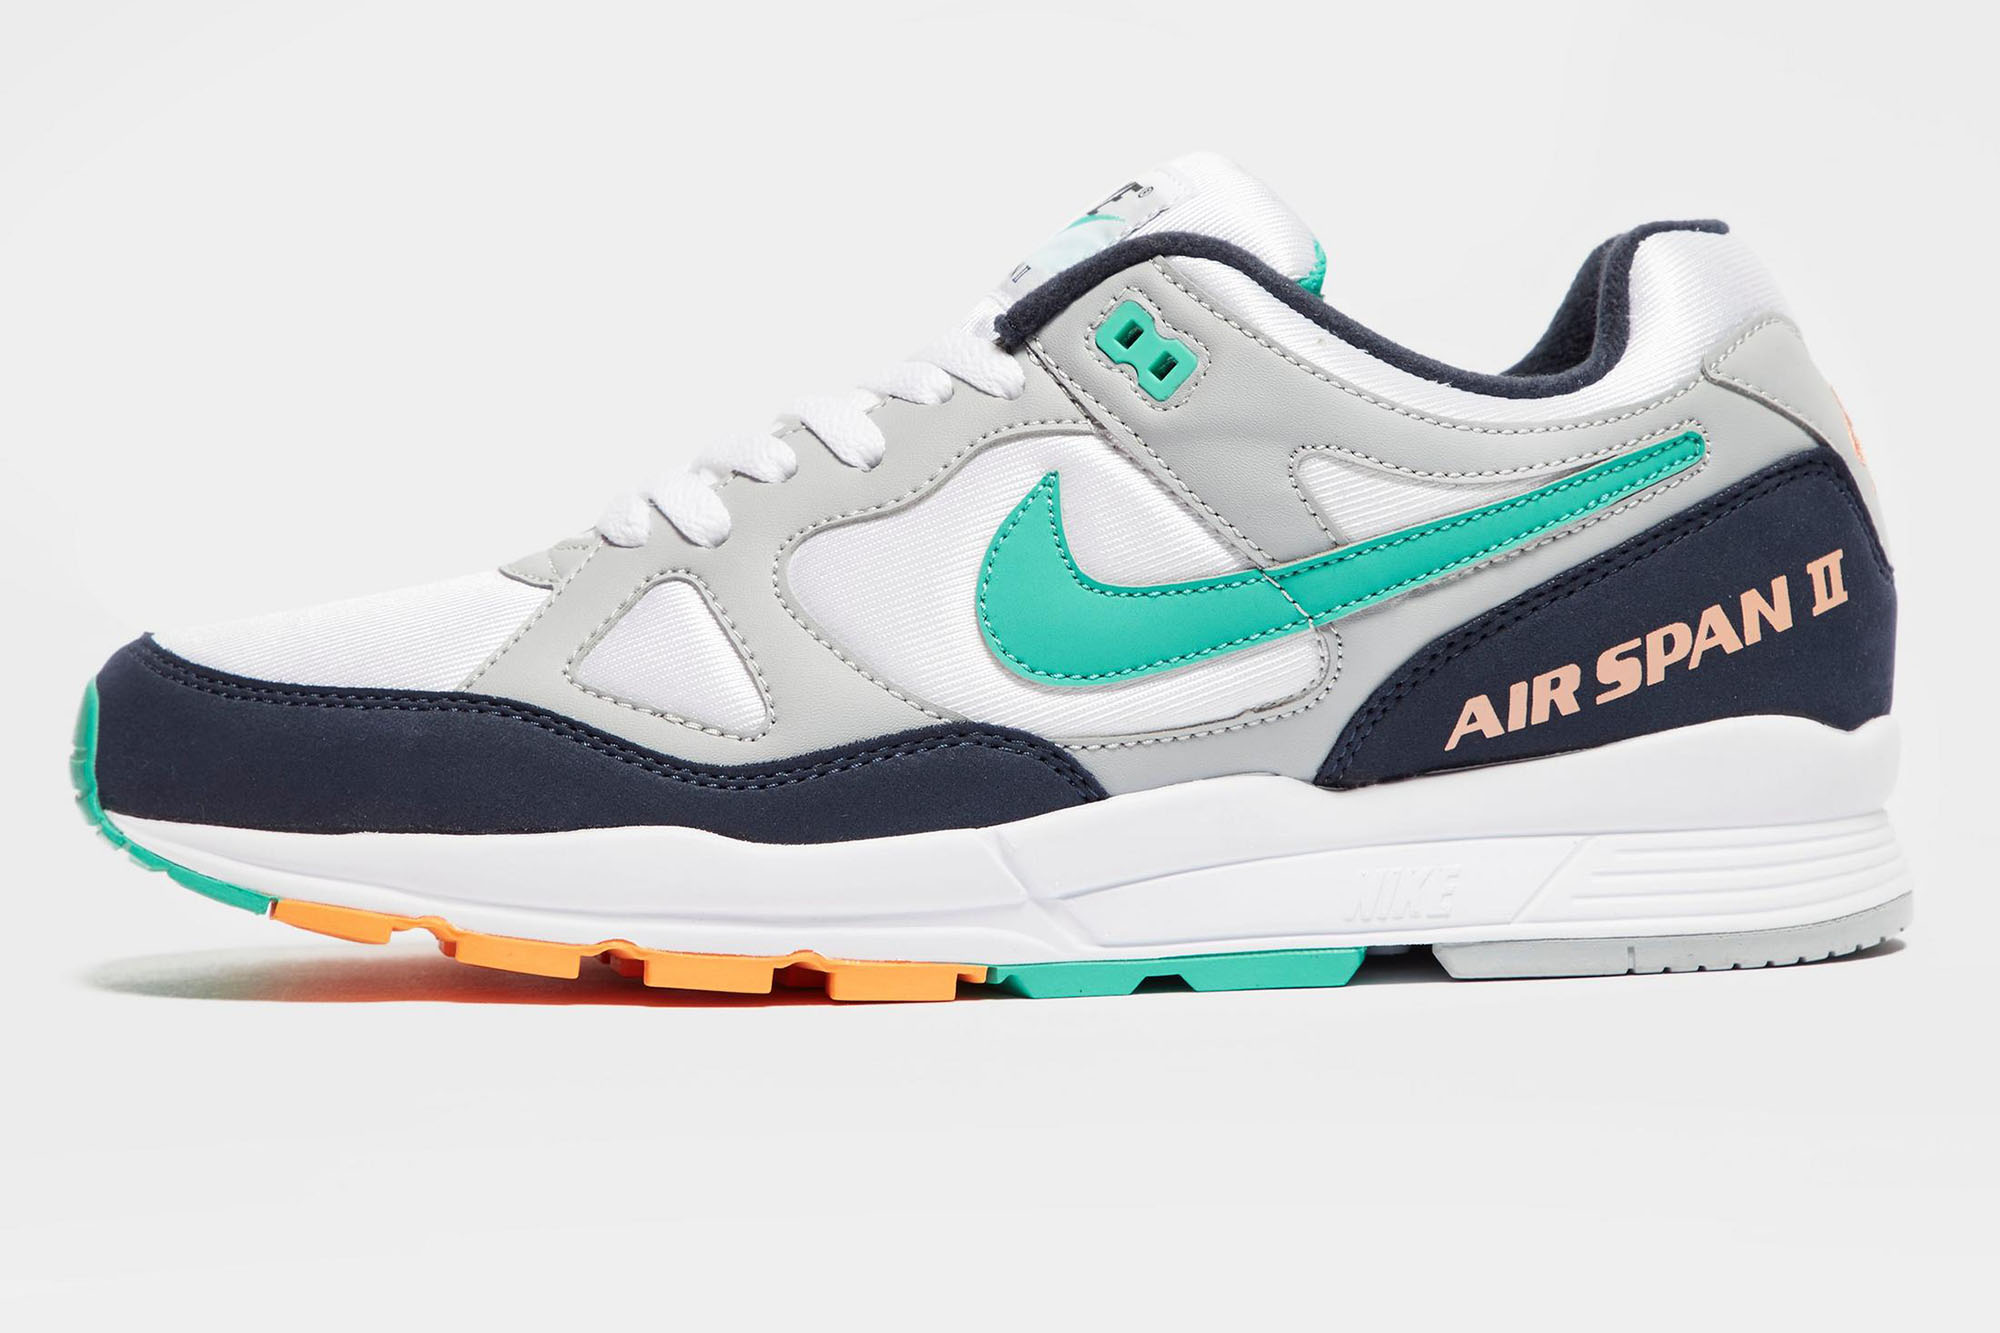 Nike Air Span II at scotts